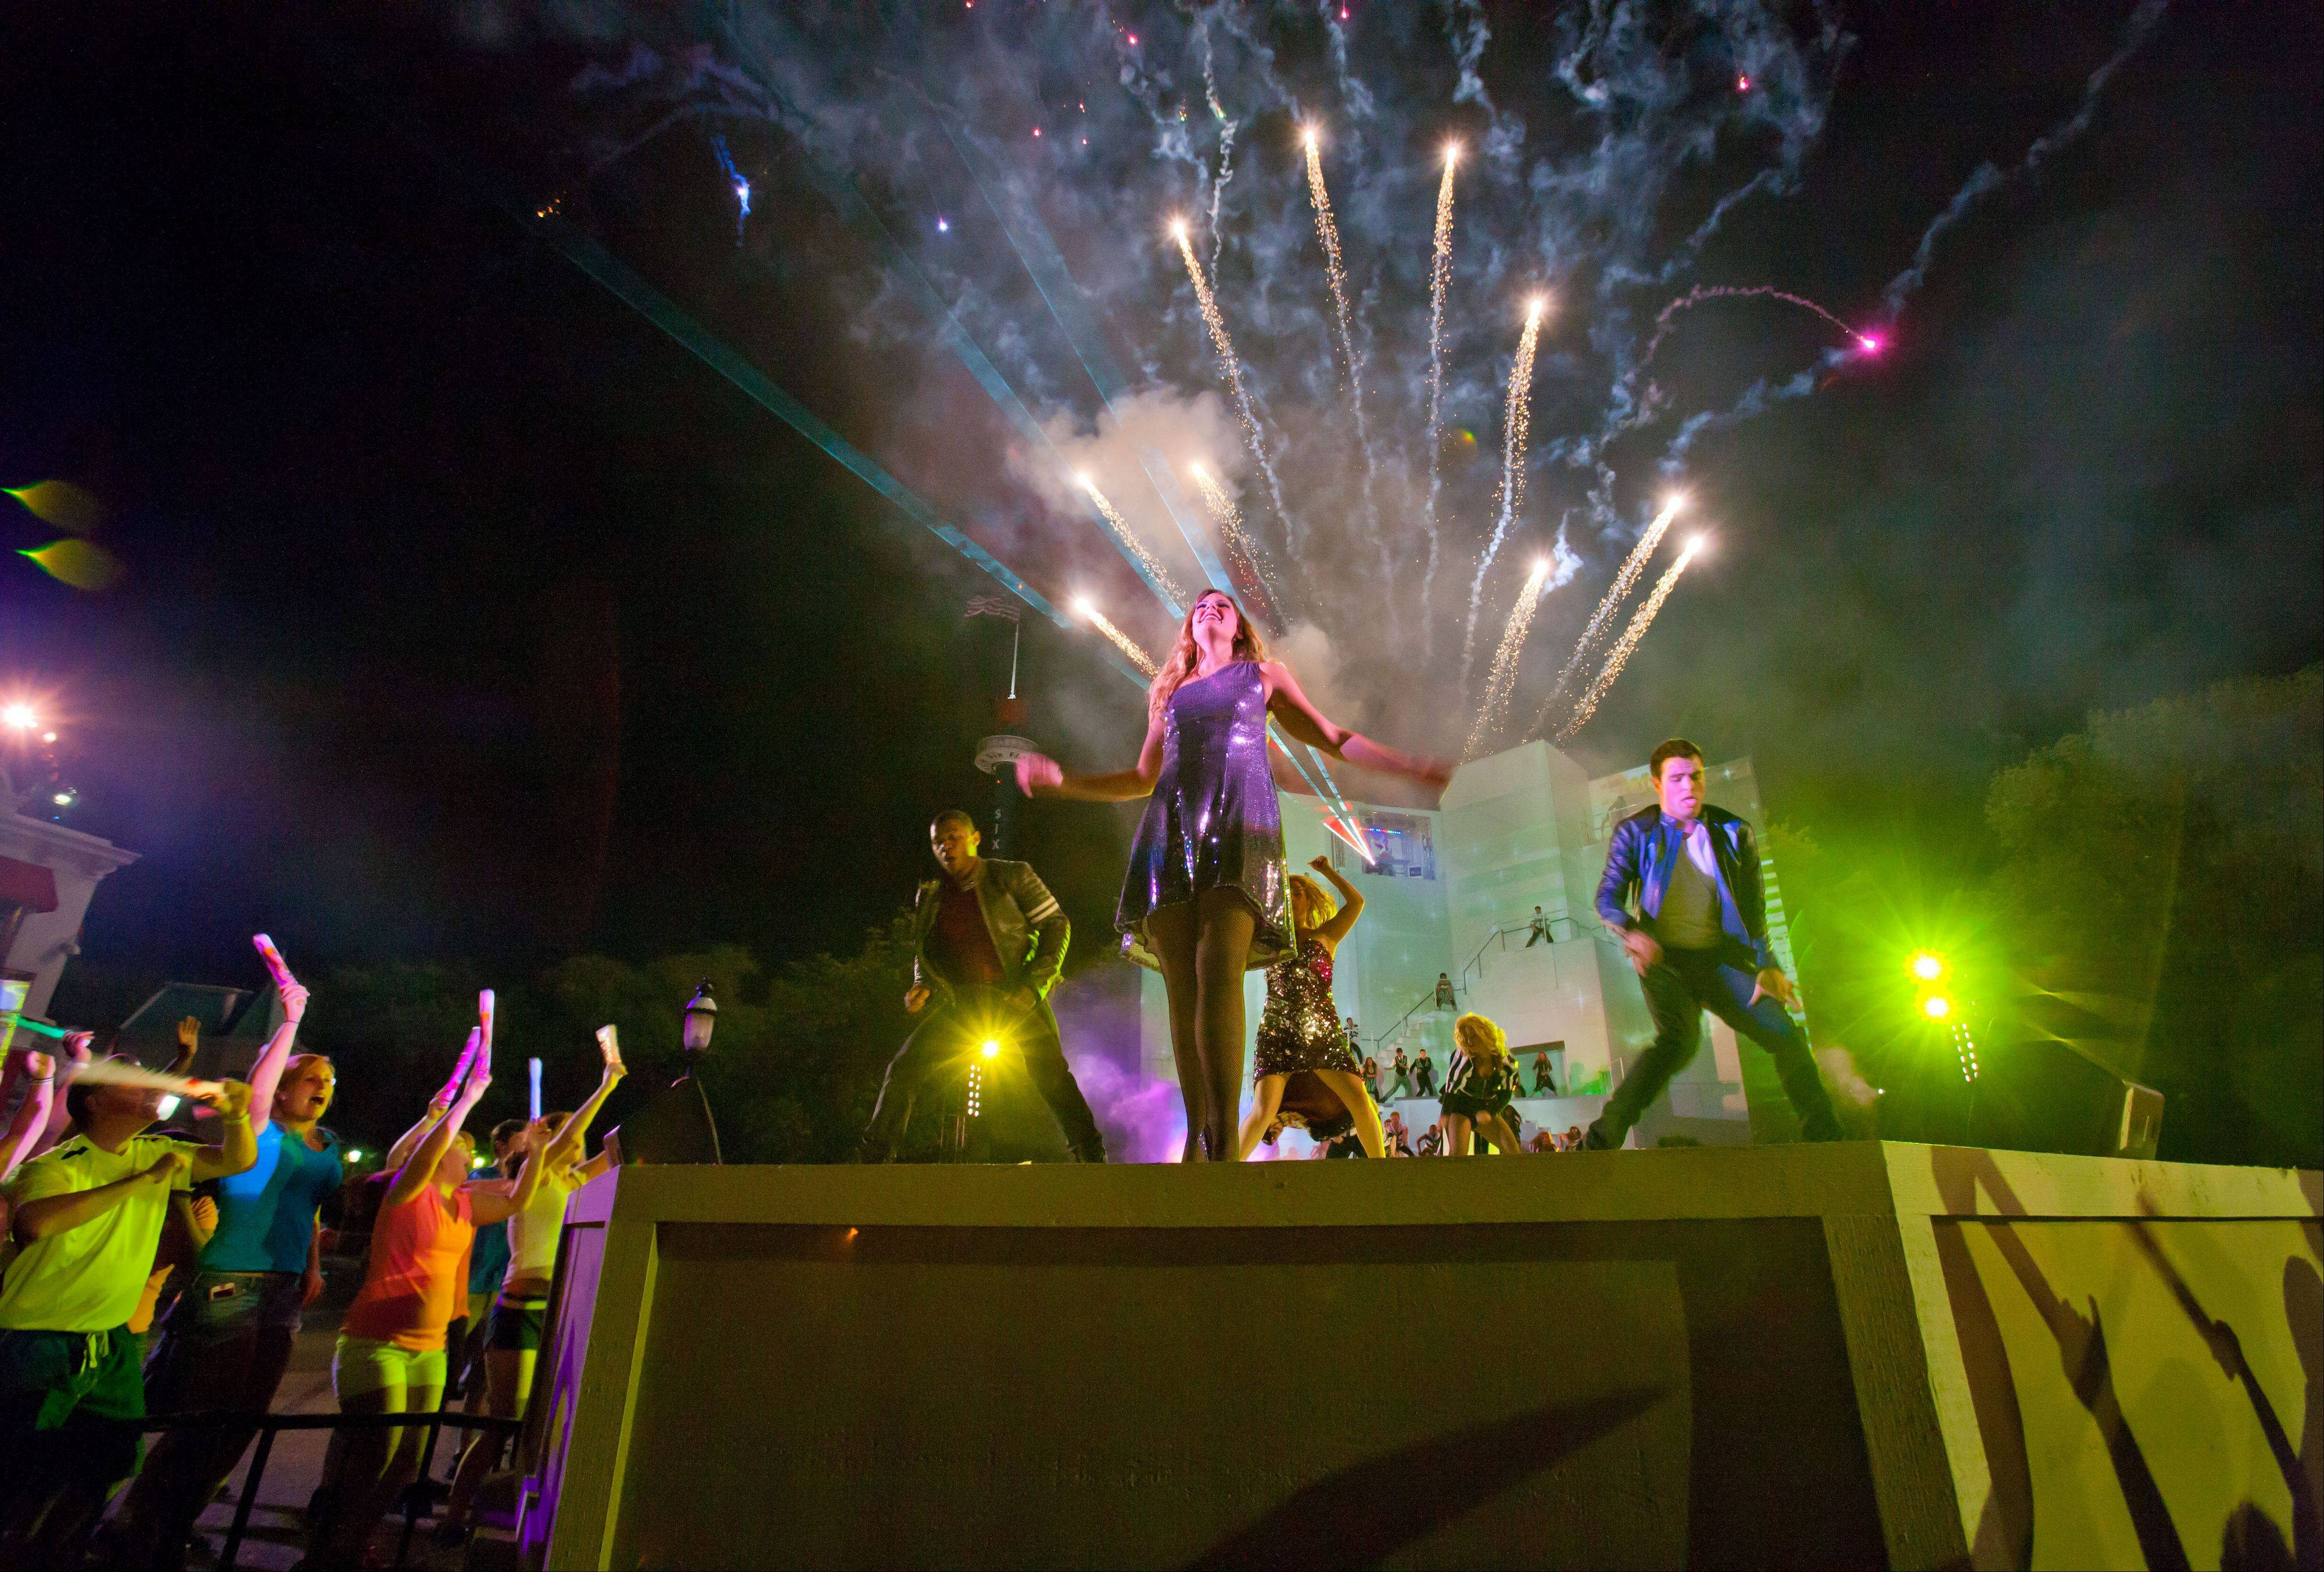 Six Flags Great America will debut igNIGHT at the theme park Saturday. It's an interactive stage show, dance club that takes place in the center of hometown square.